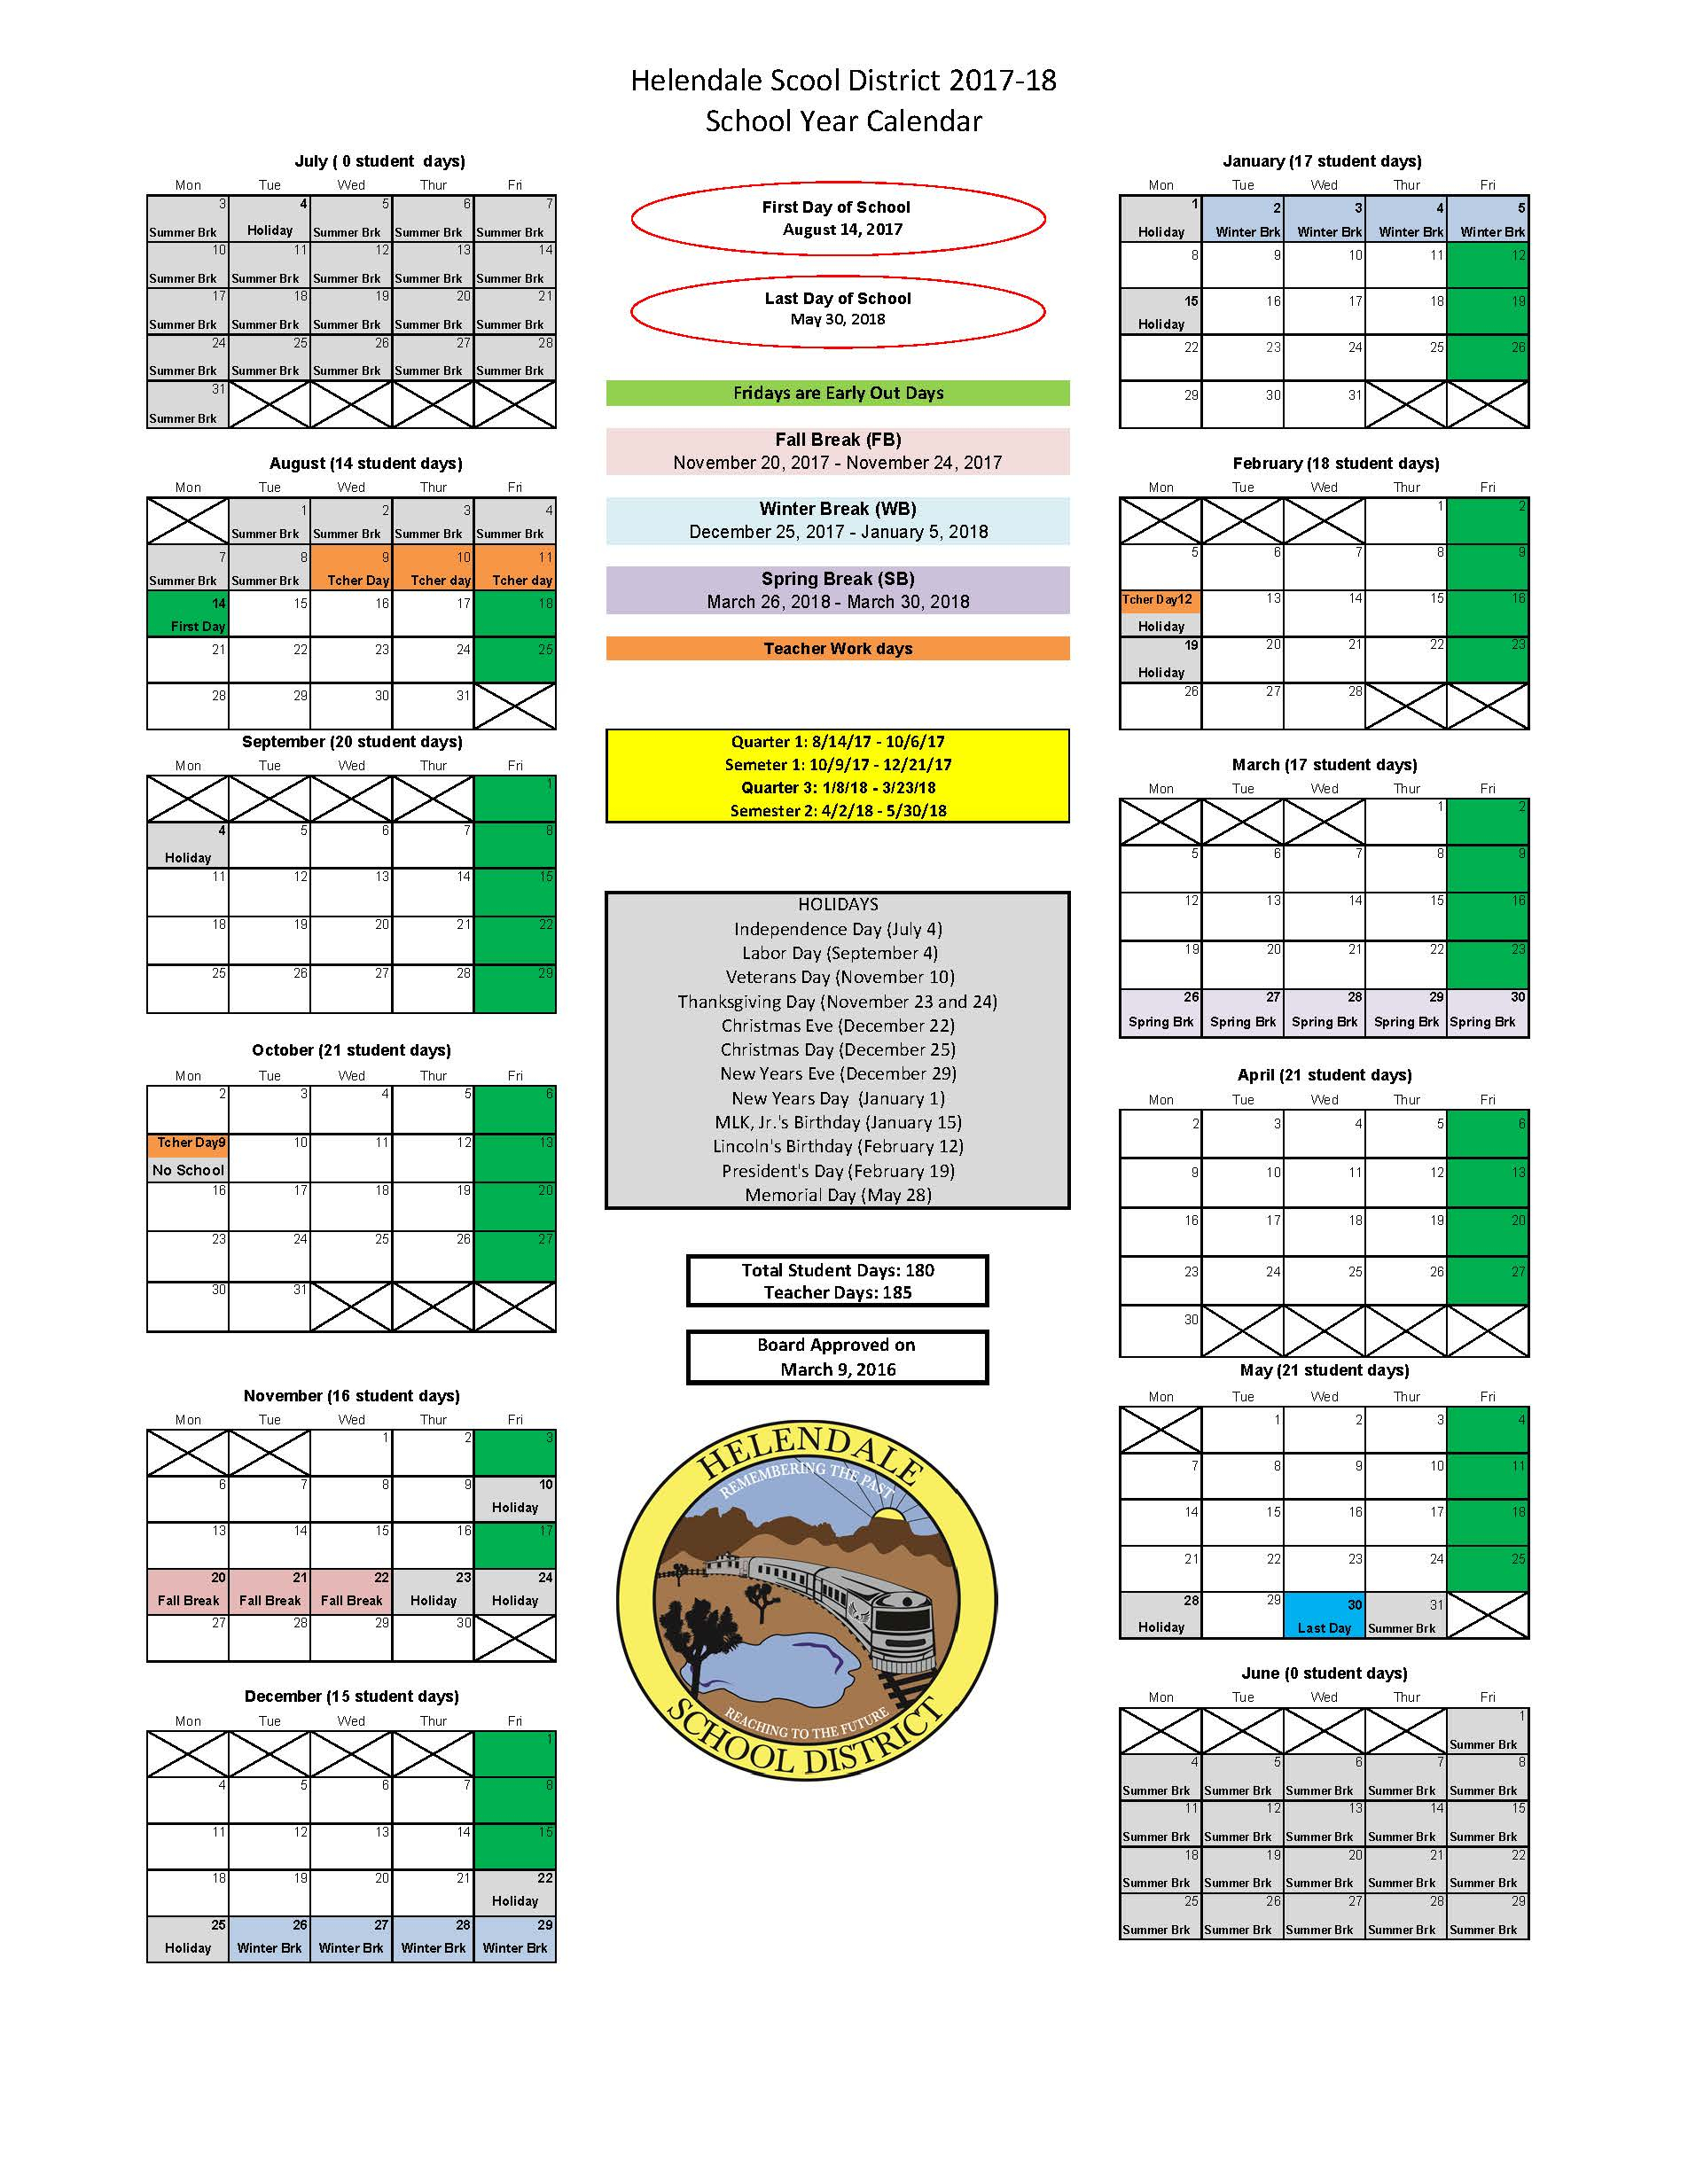 2016-2017; 2017-2018; 2018-19 District Calendar - Helendale in Victorville School District Calendar